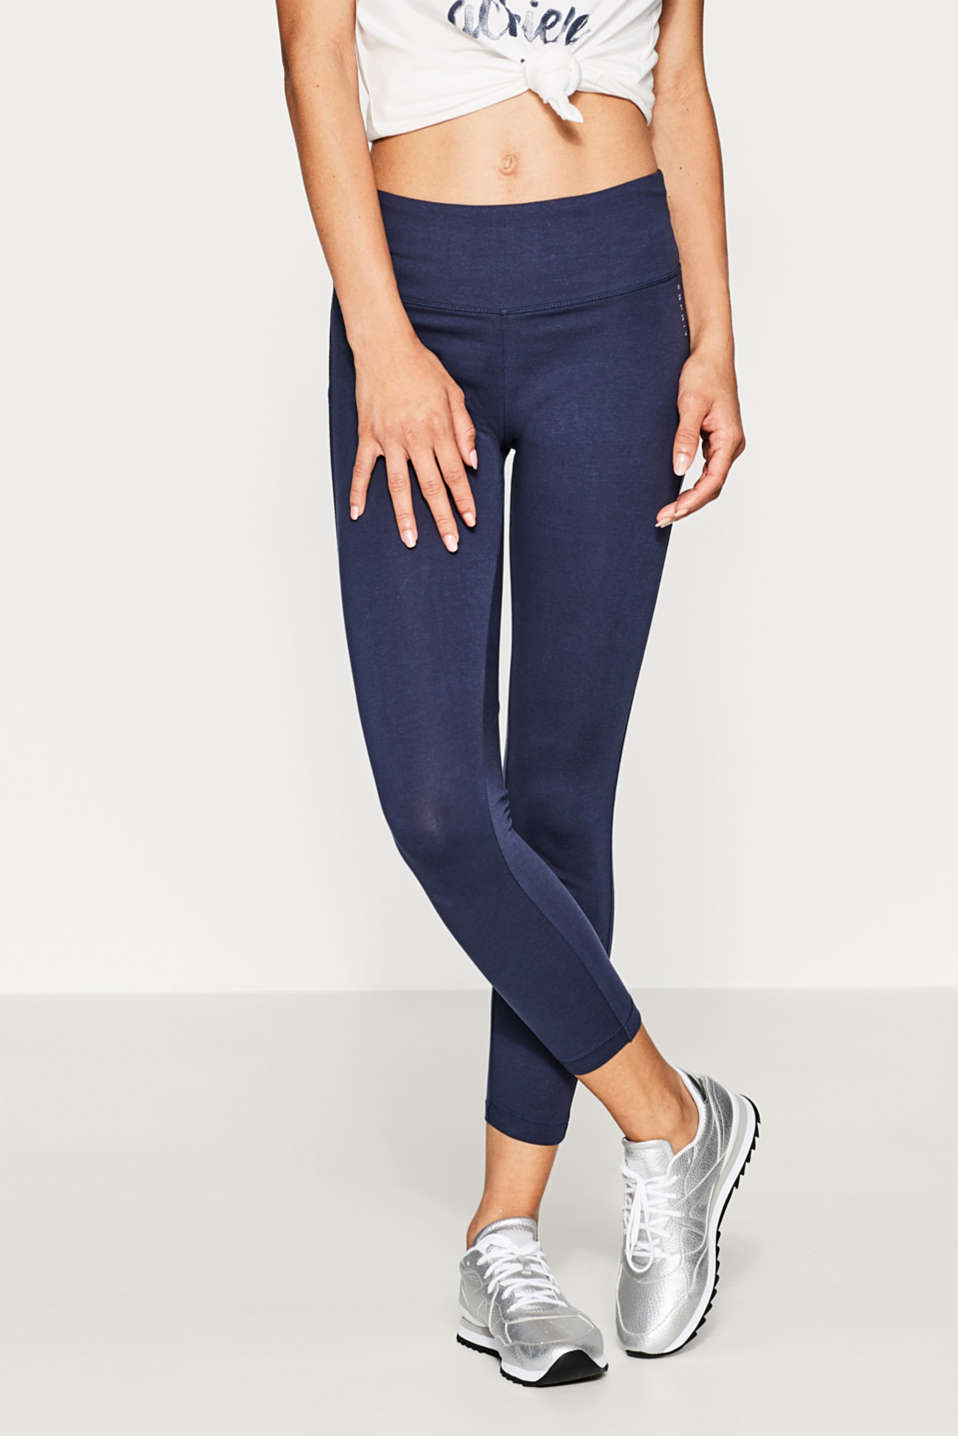 Esprit - 7/8 leggings with a wide waistband